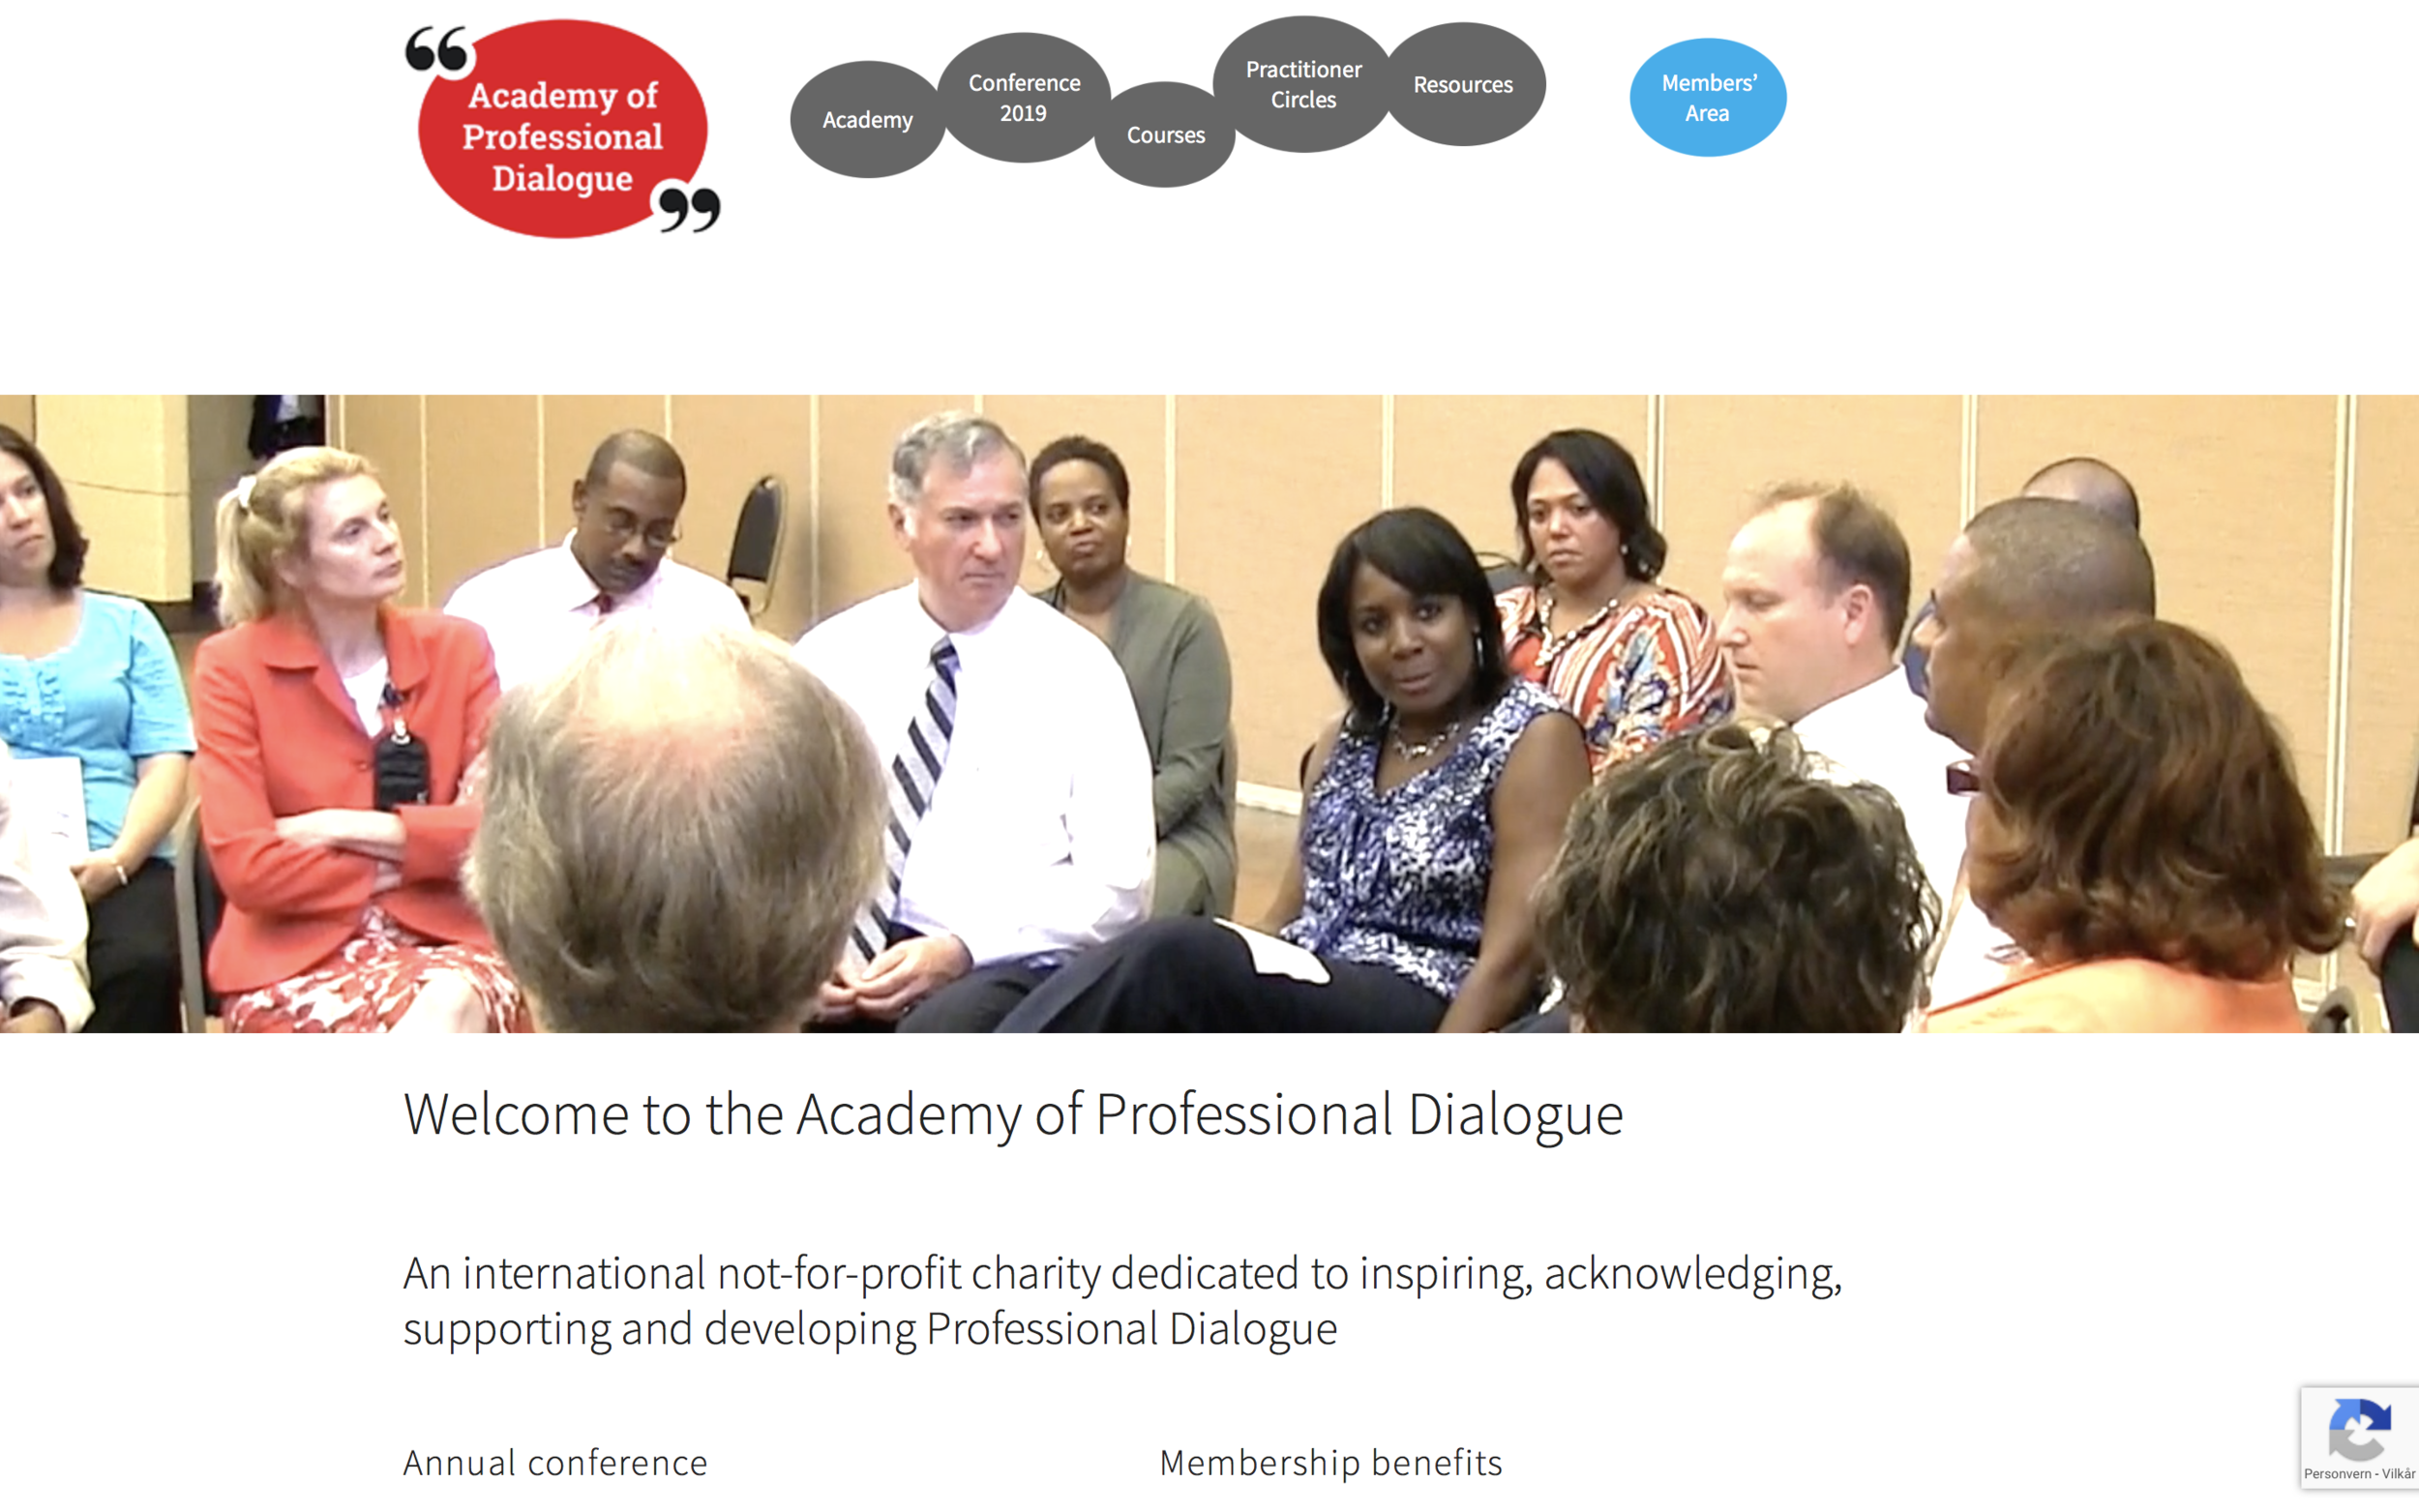 Academy of Professional Dialogue - An international not-for-profit charity dedicated to inspiring, acknowledging, supporting and developing Professional Dialogue.